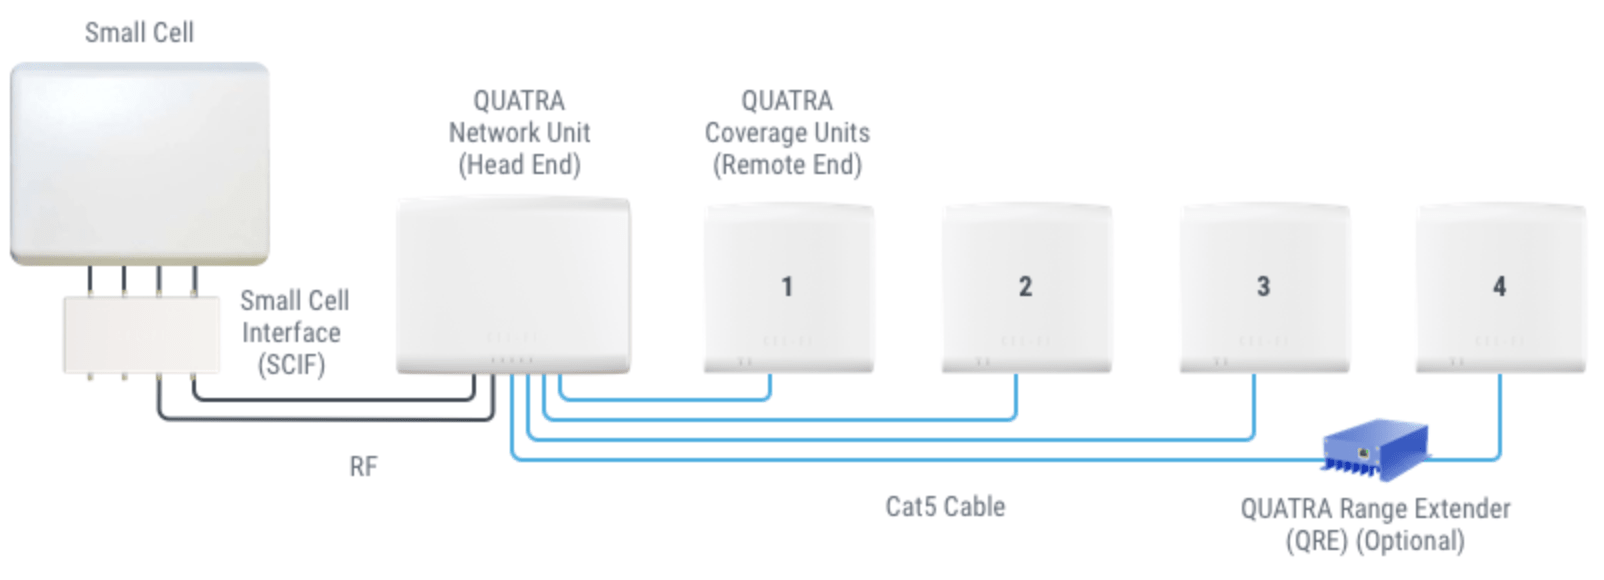 Cel-Fi QUATRA 1000 Small Cell installation configuration / set-up